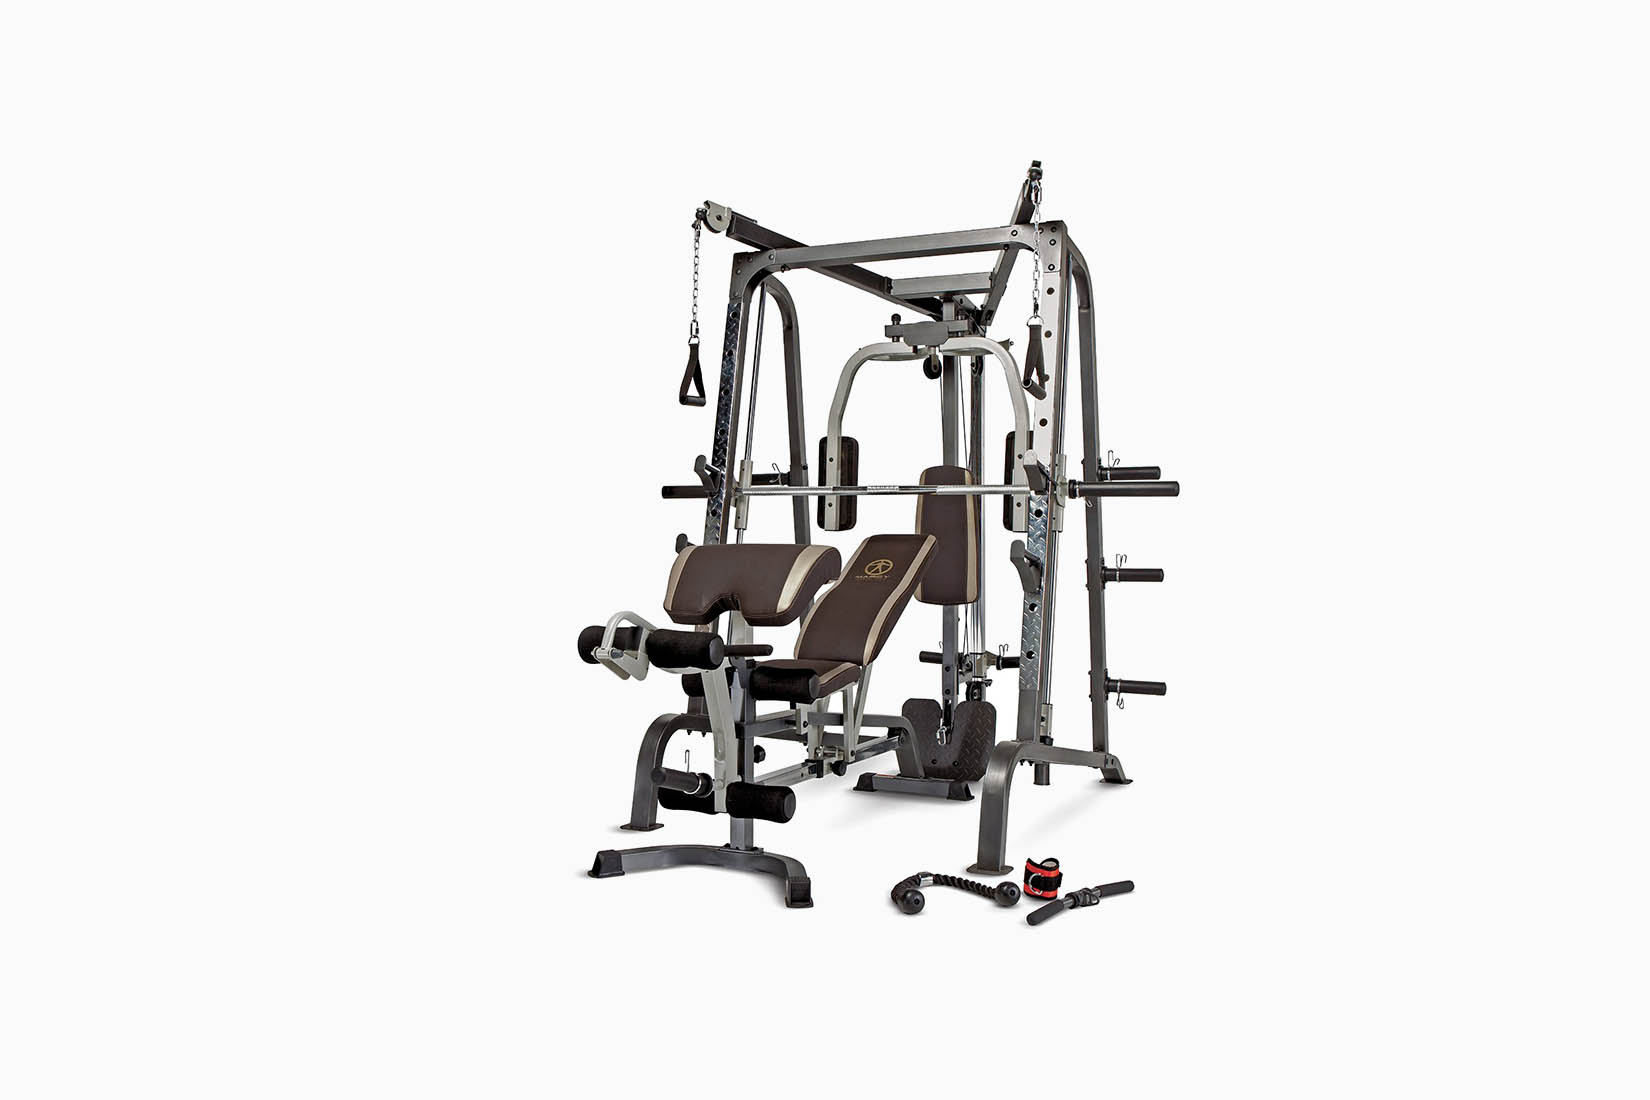 best home gym equipment marcy smith review - luxe digital